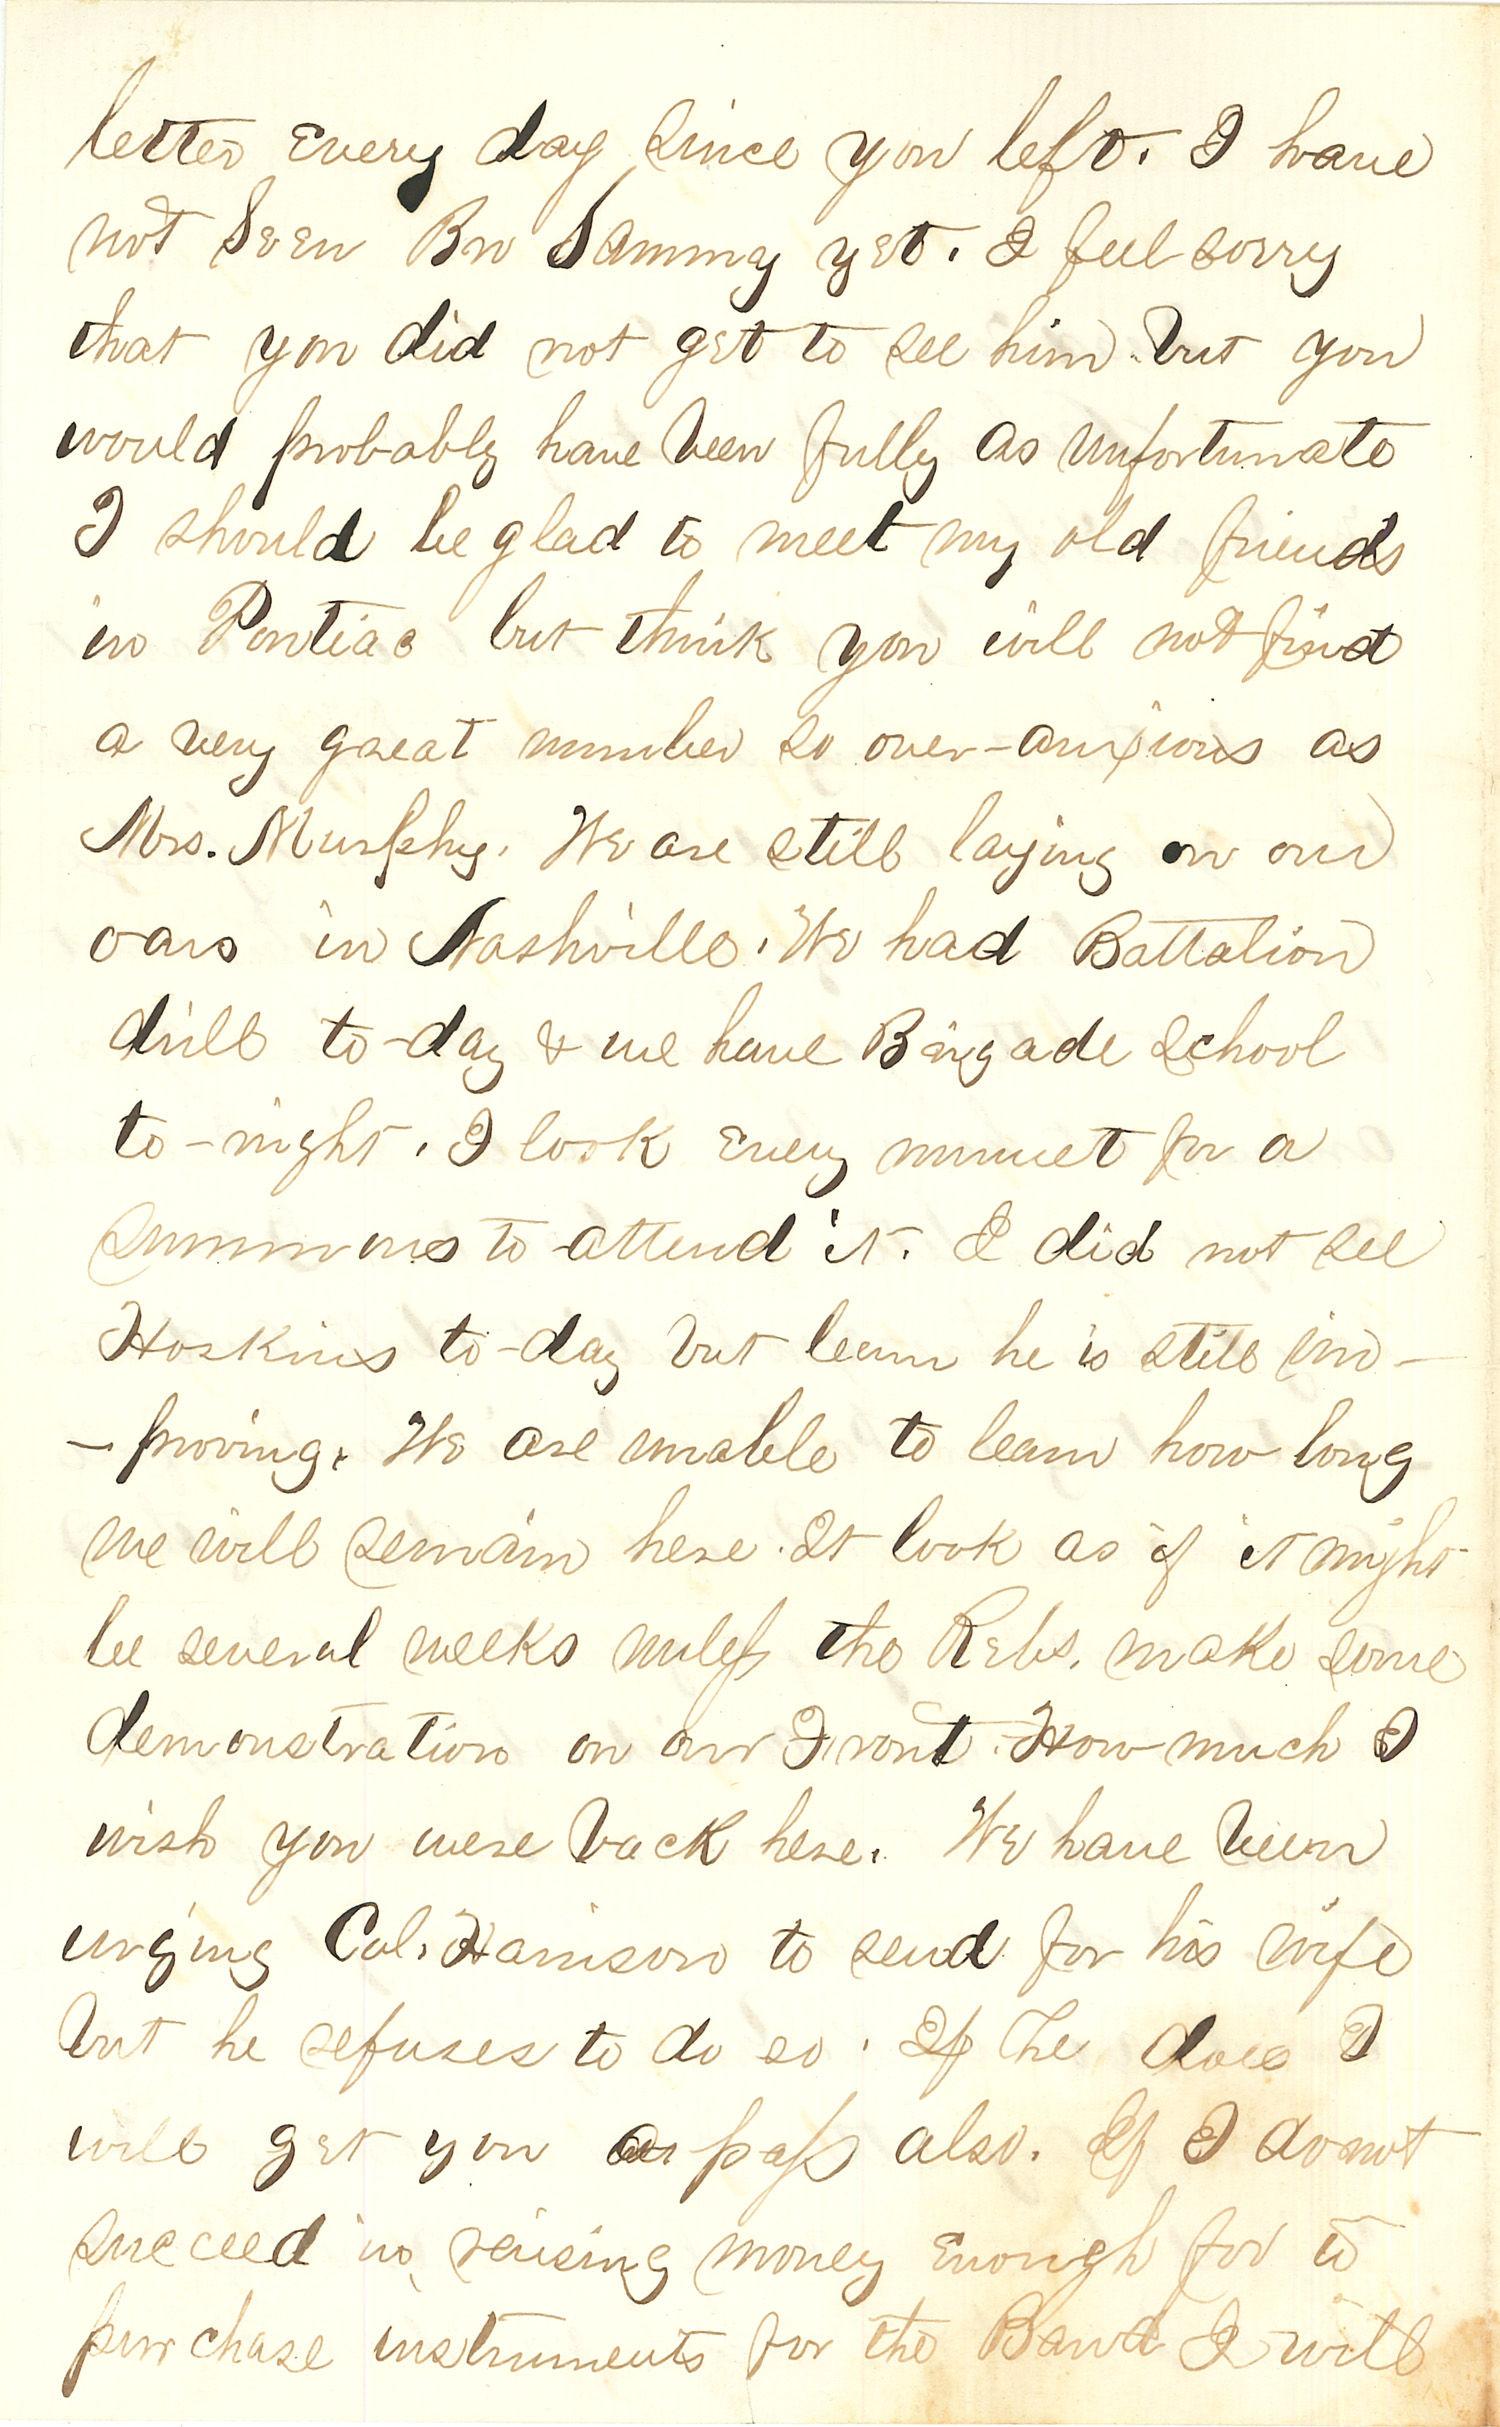 Joseph Culver Letter, February 12, 1864, Page 2